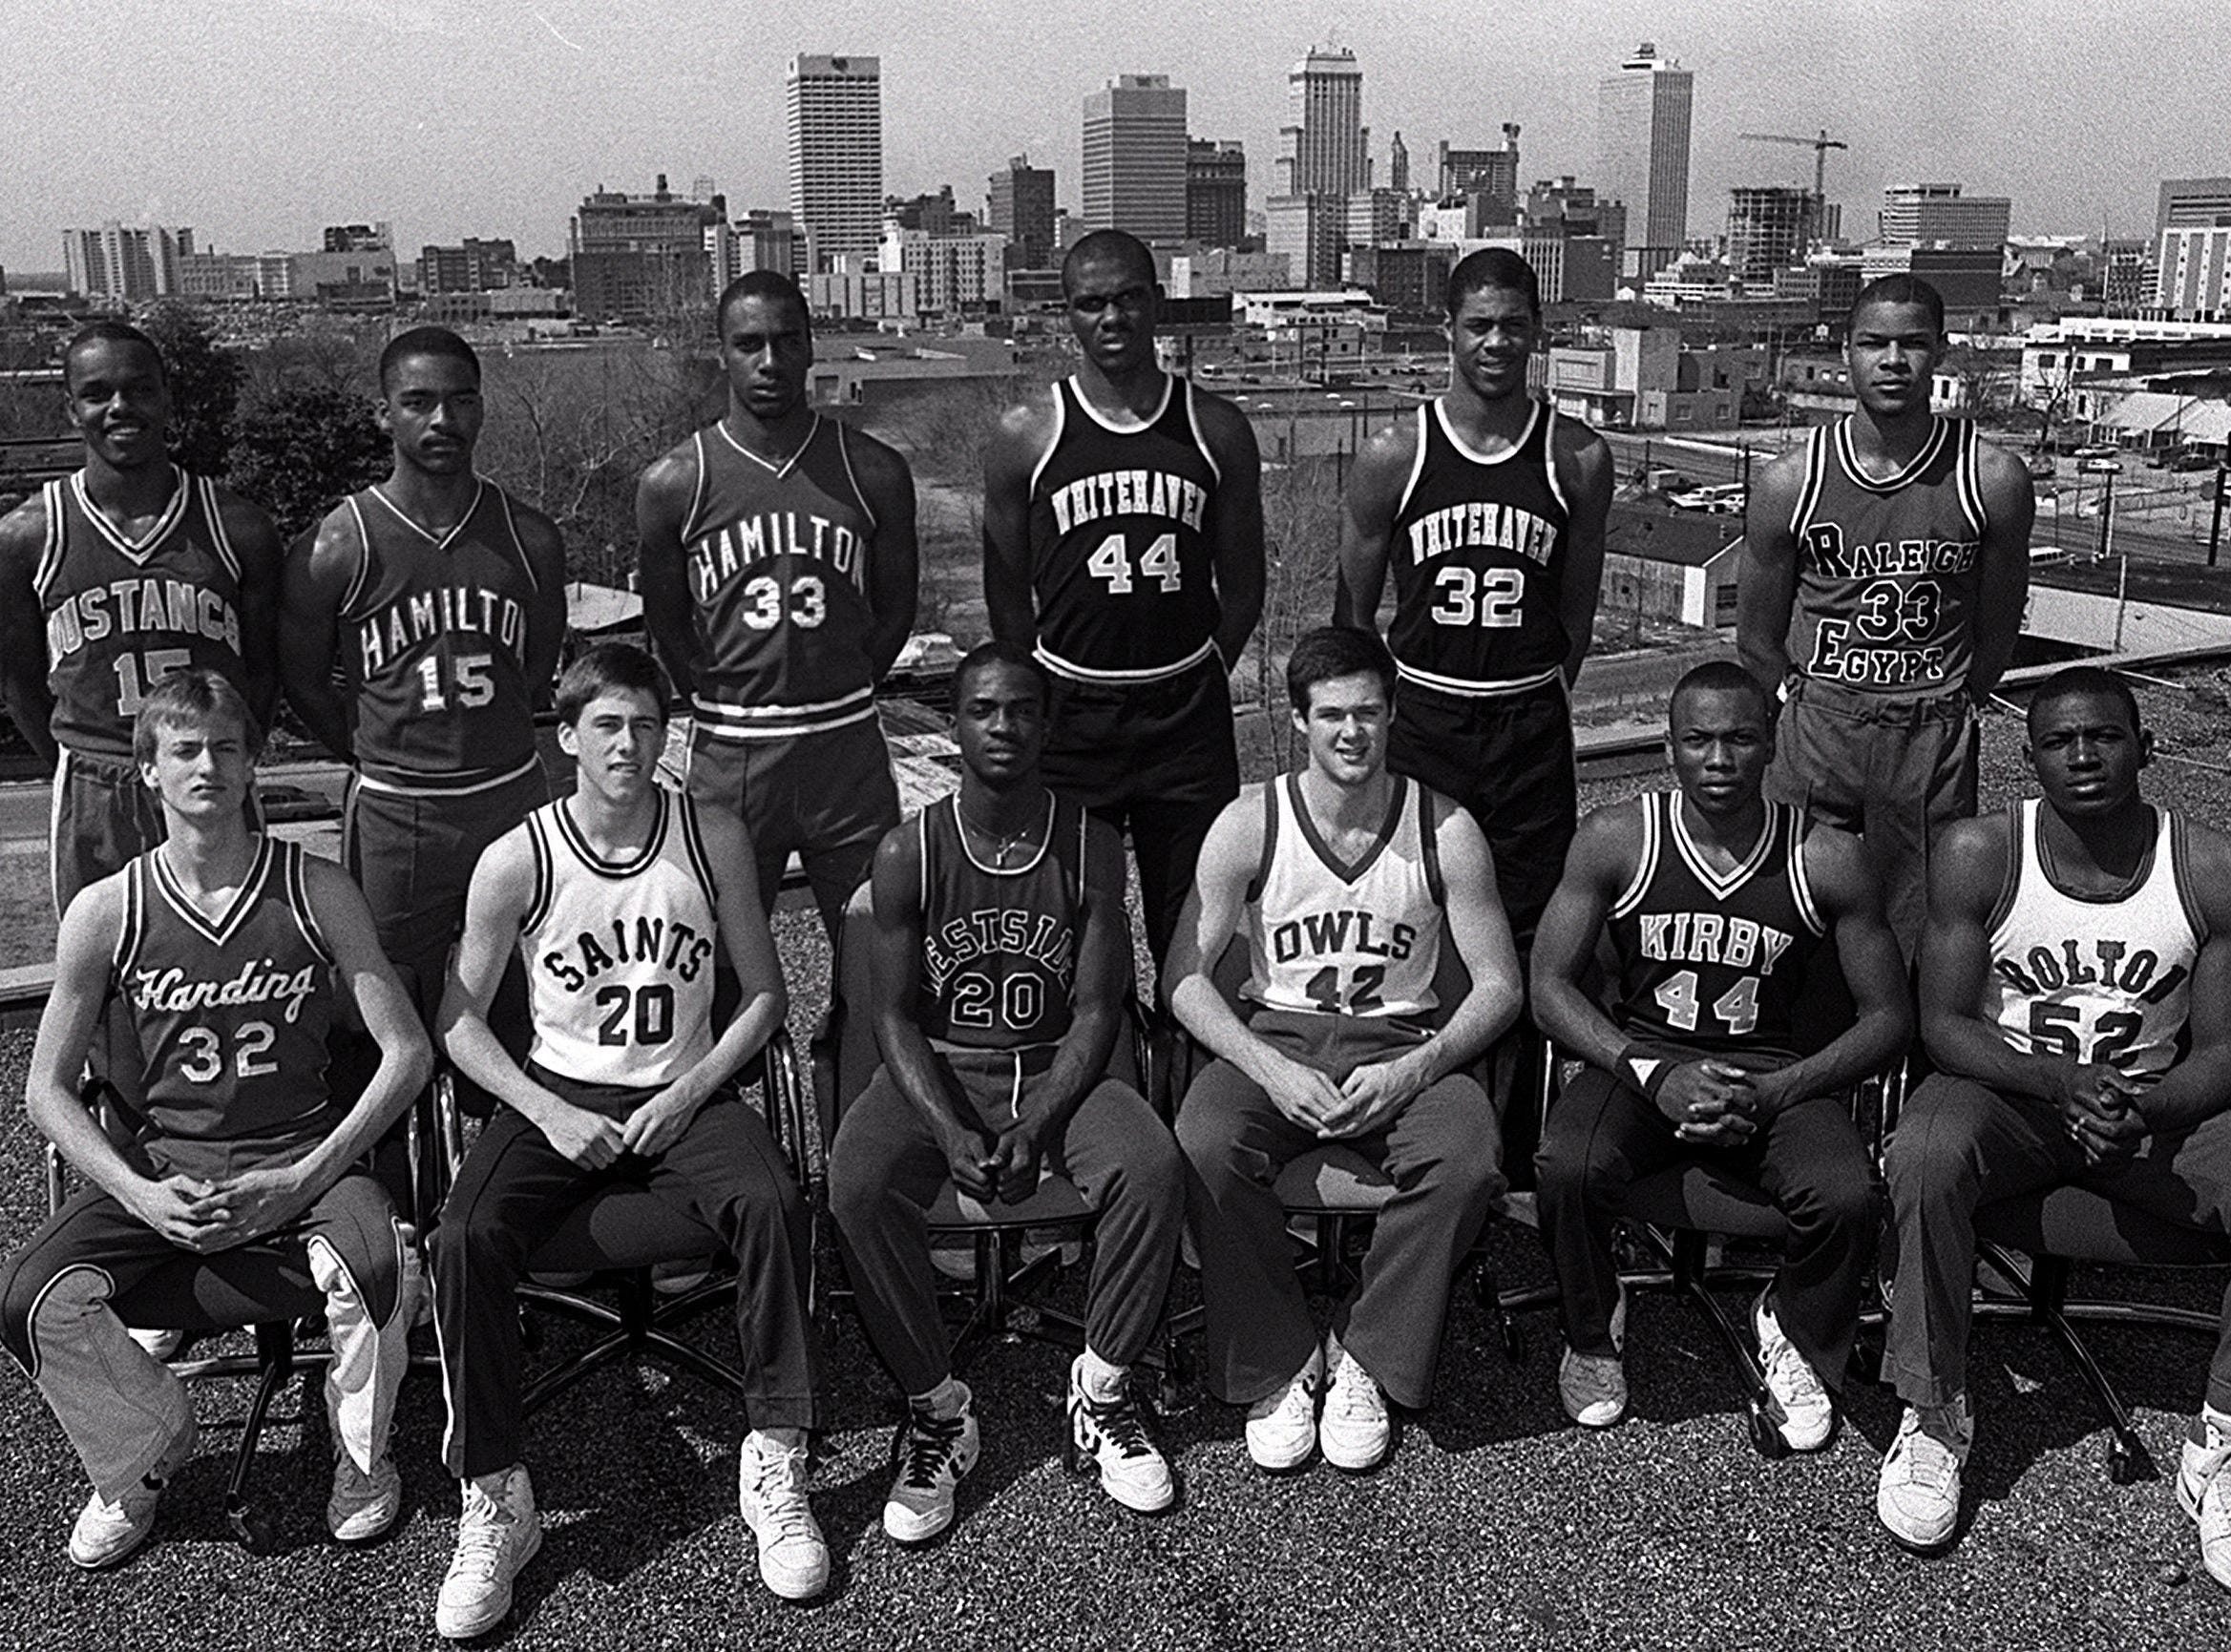 Comprising the 1985 All-MIAA team in the back row are (Left to Right) Greg Lockhart of East, Darrell Faulkner of Hamilton, Darrion Applewhite of Hamilton, Marvin Alexander of Whitehaven, Ron Huery of Whitehaven and Jewell Burton of Raleigh-Egypt. Up front on the All Shelby Metro team are (Left to Right) Troy Garrett of Harding, Keith Kessinger of Briarcrest, Roderick Watson of Westside, Jim Barton of MUS, Mark Short of Kirby and Sylvester Gray of Bolton.